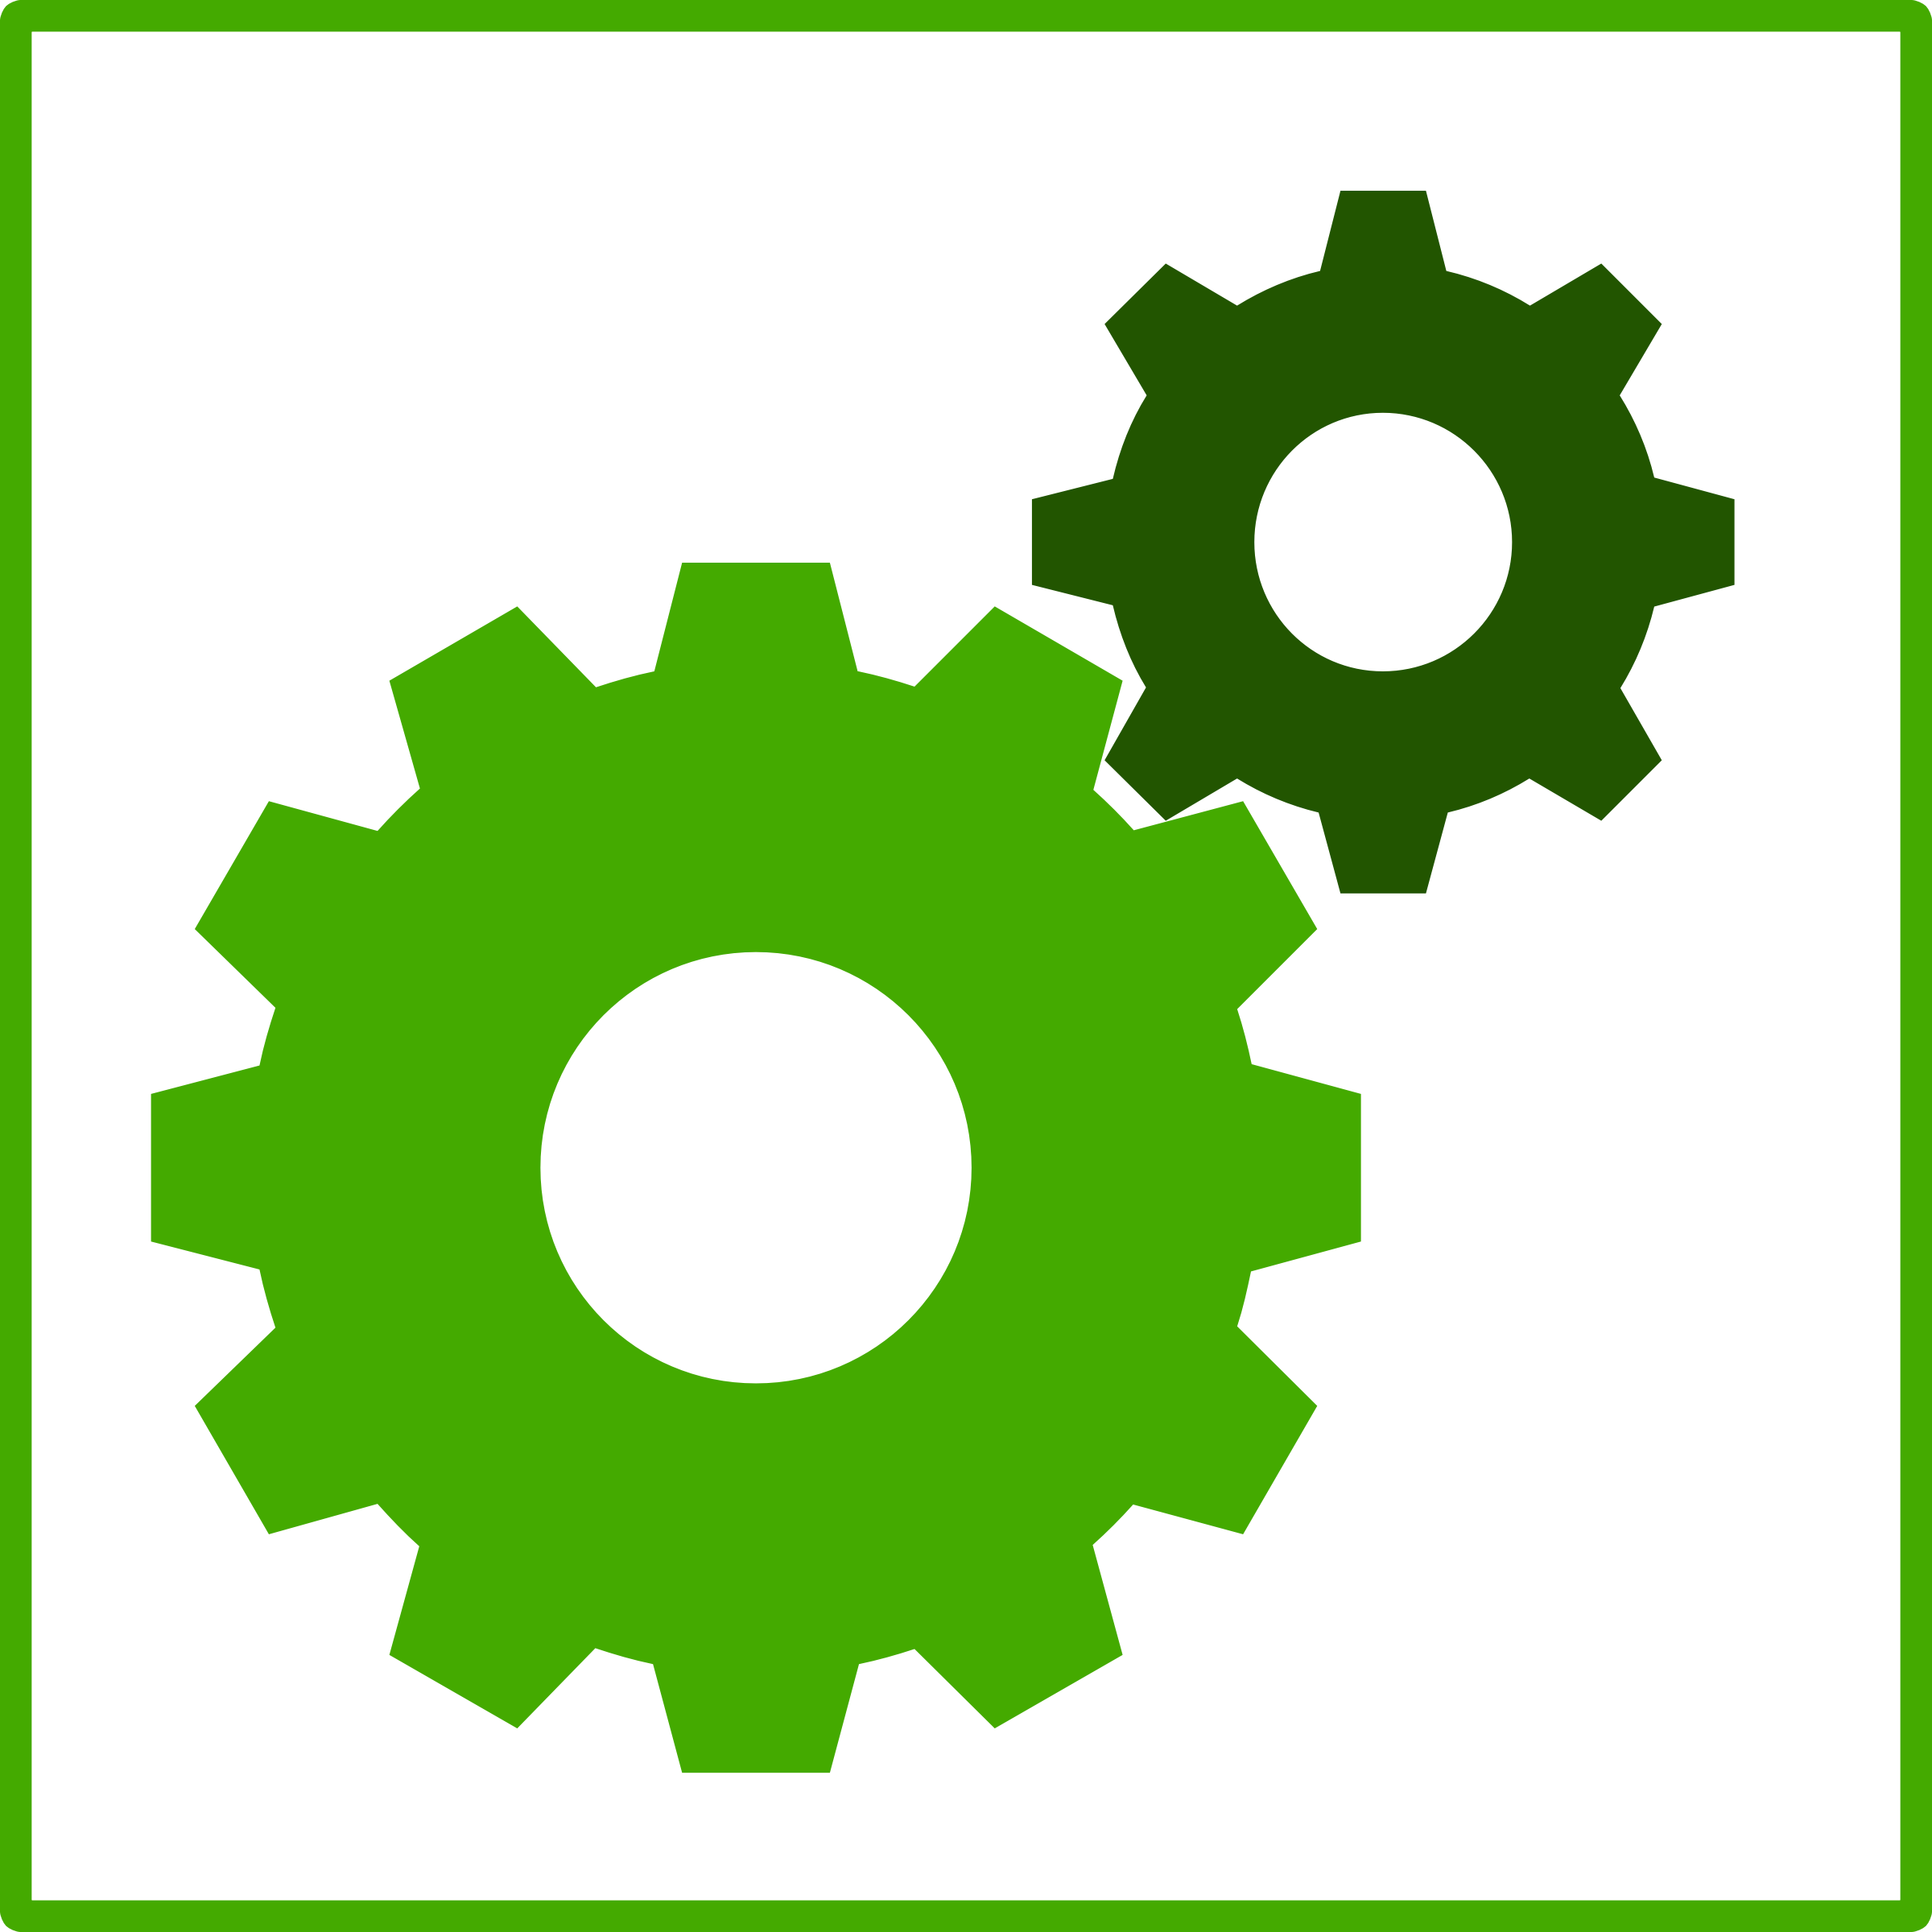 eco green machine icon by dominiquechappard